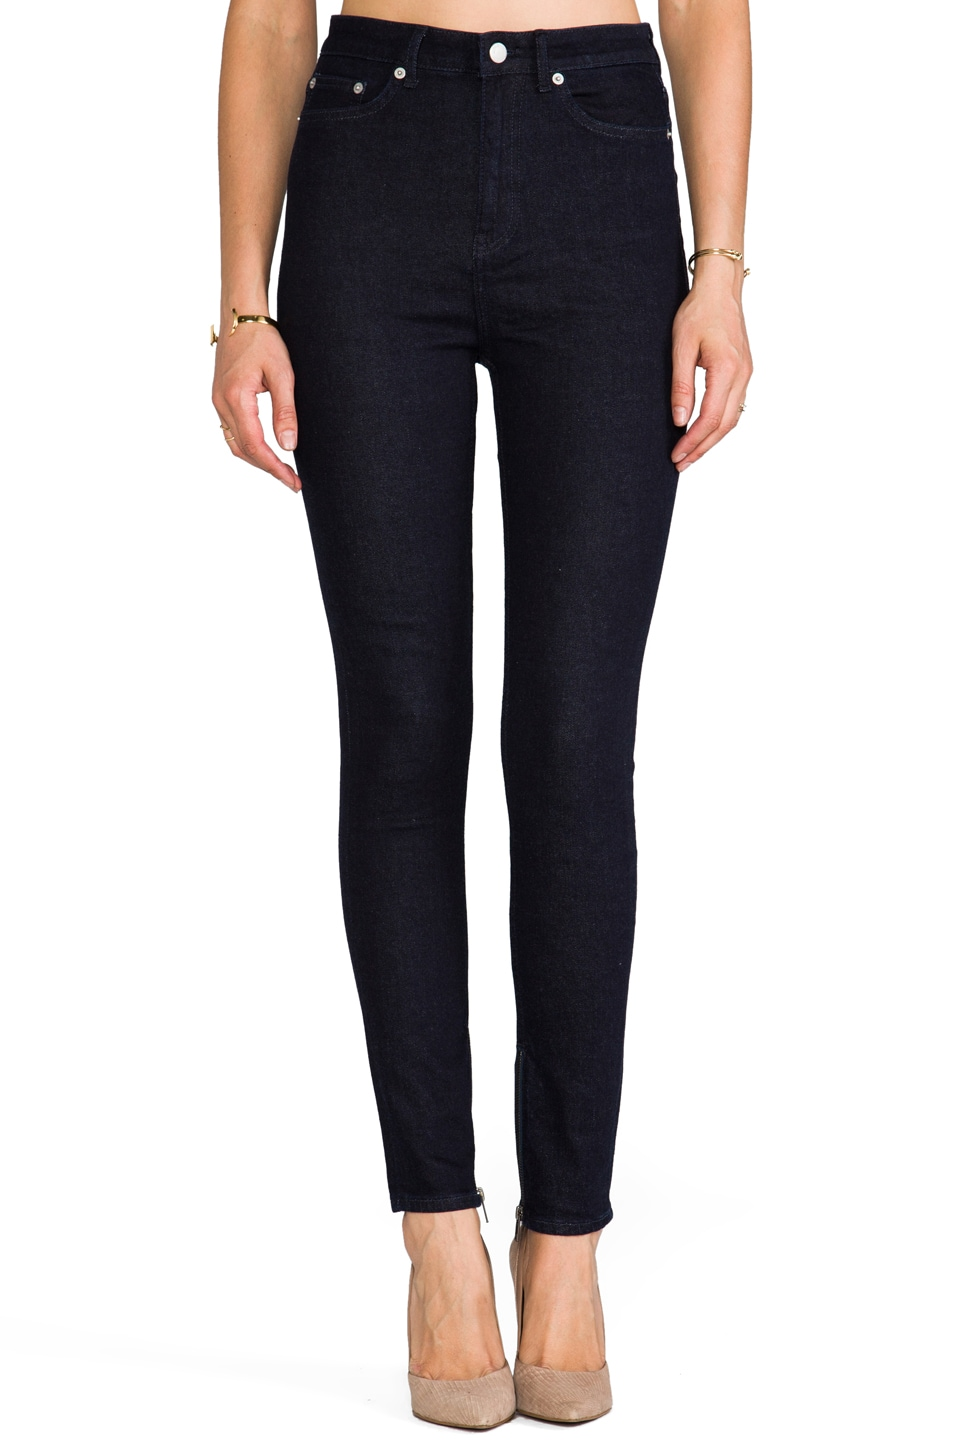 BLK DNM Jeans 8 in Ocean Blue